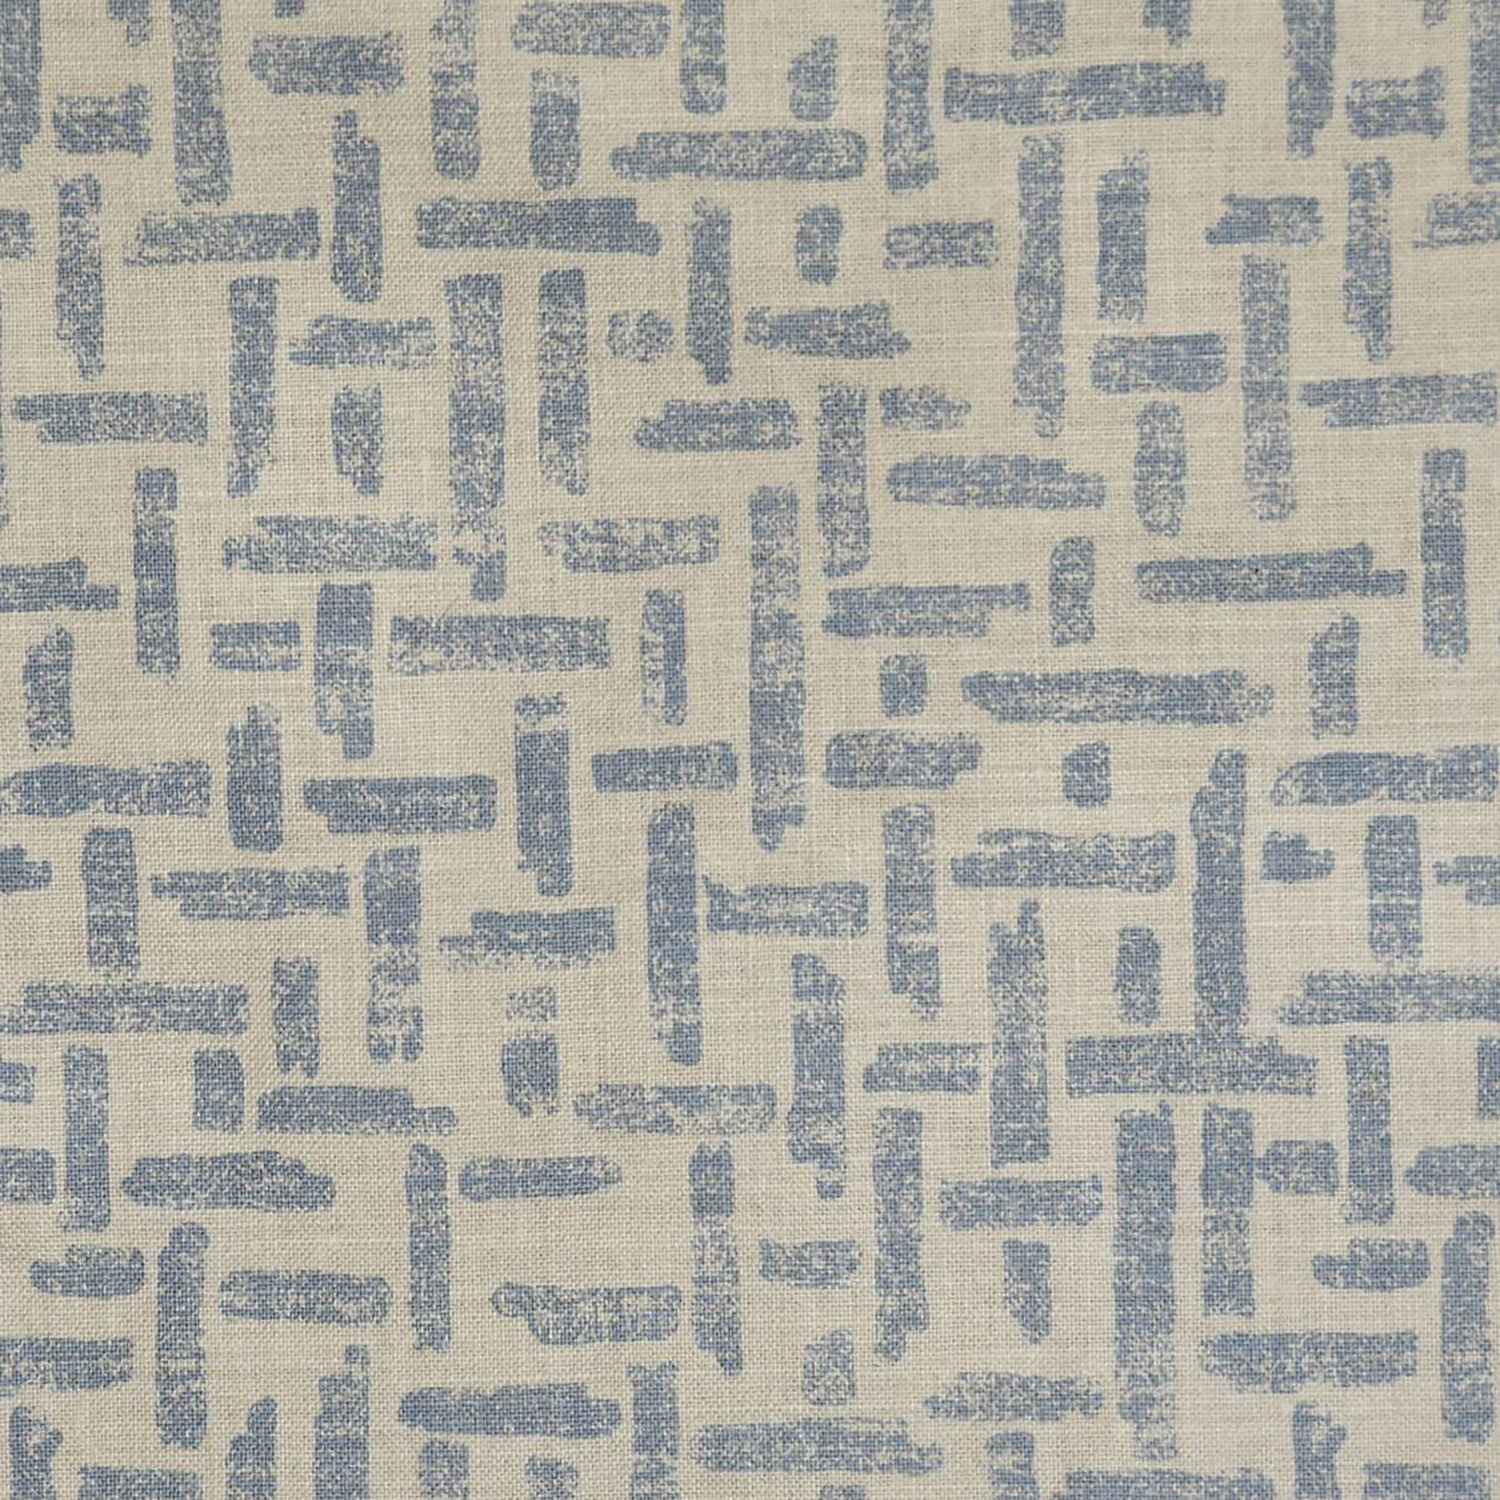 <p><strong>CRISS CROSS</strong>blue/natural 8200-01<a href=/collection-4/criss-cross-blue-natural-8200-01>More →</a></p>